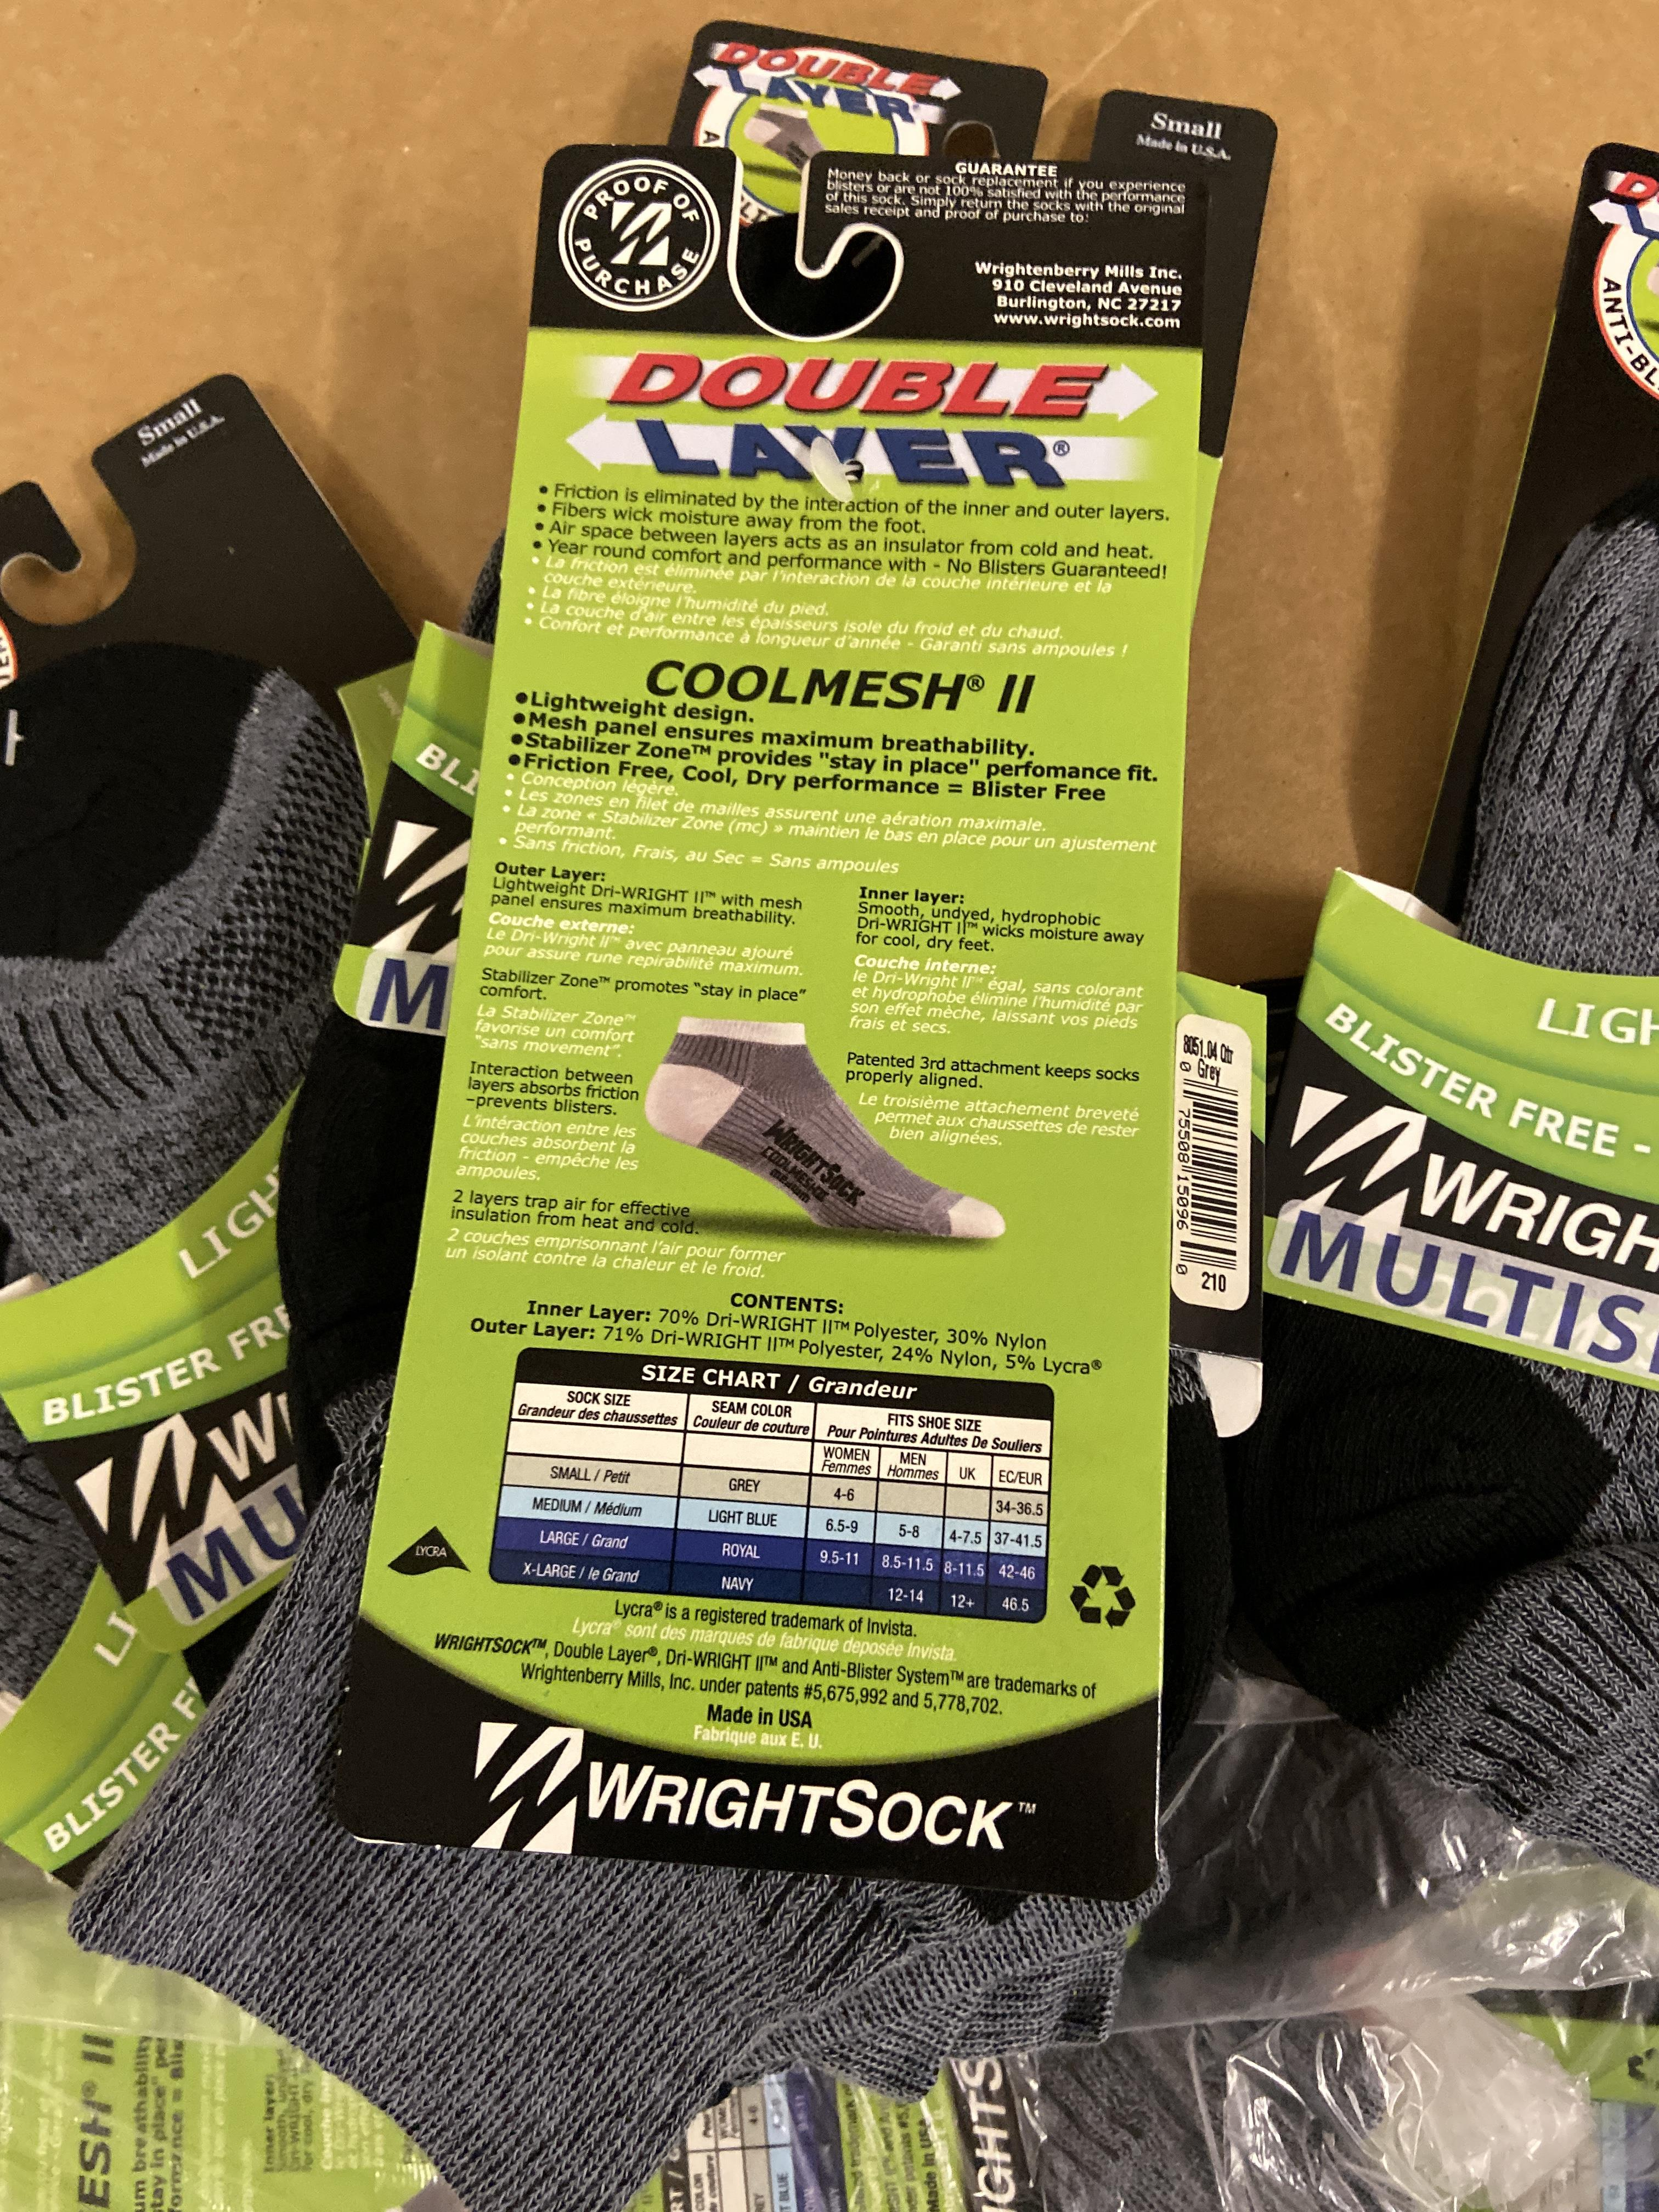 Lot 7 - 250+ packs of New Socks, Wrightsock Multisport, Double Layer, Gray/Black Lot has approx 250 packs,